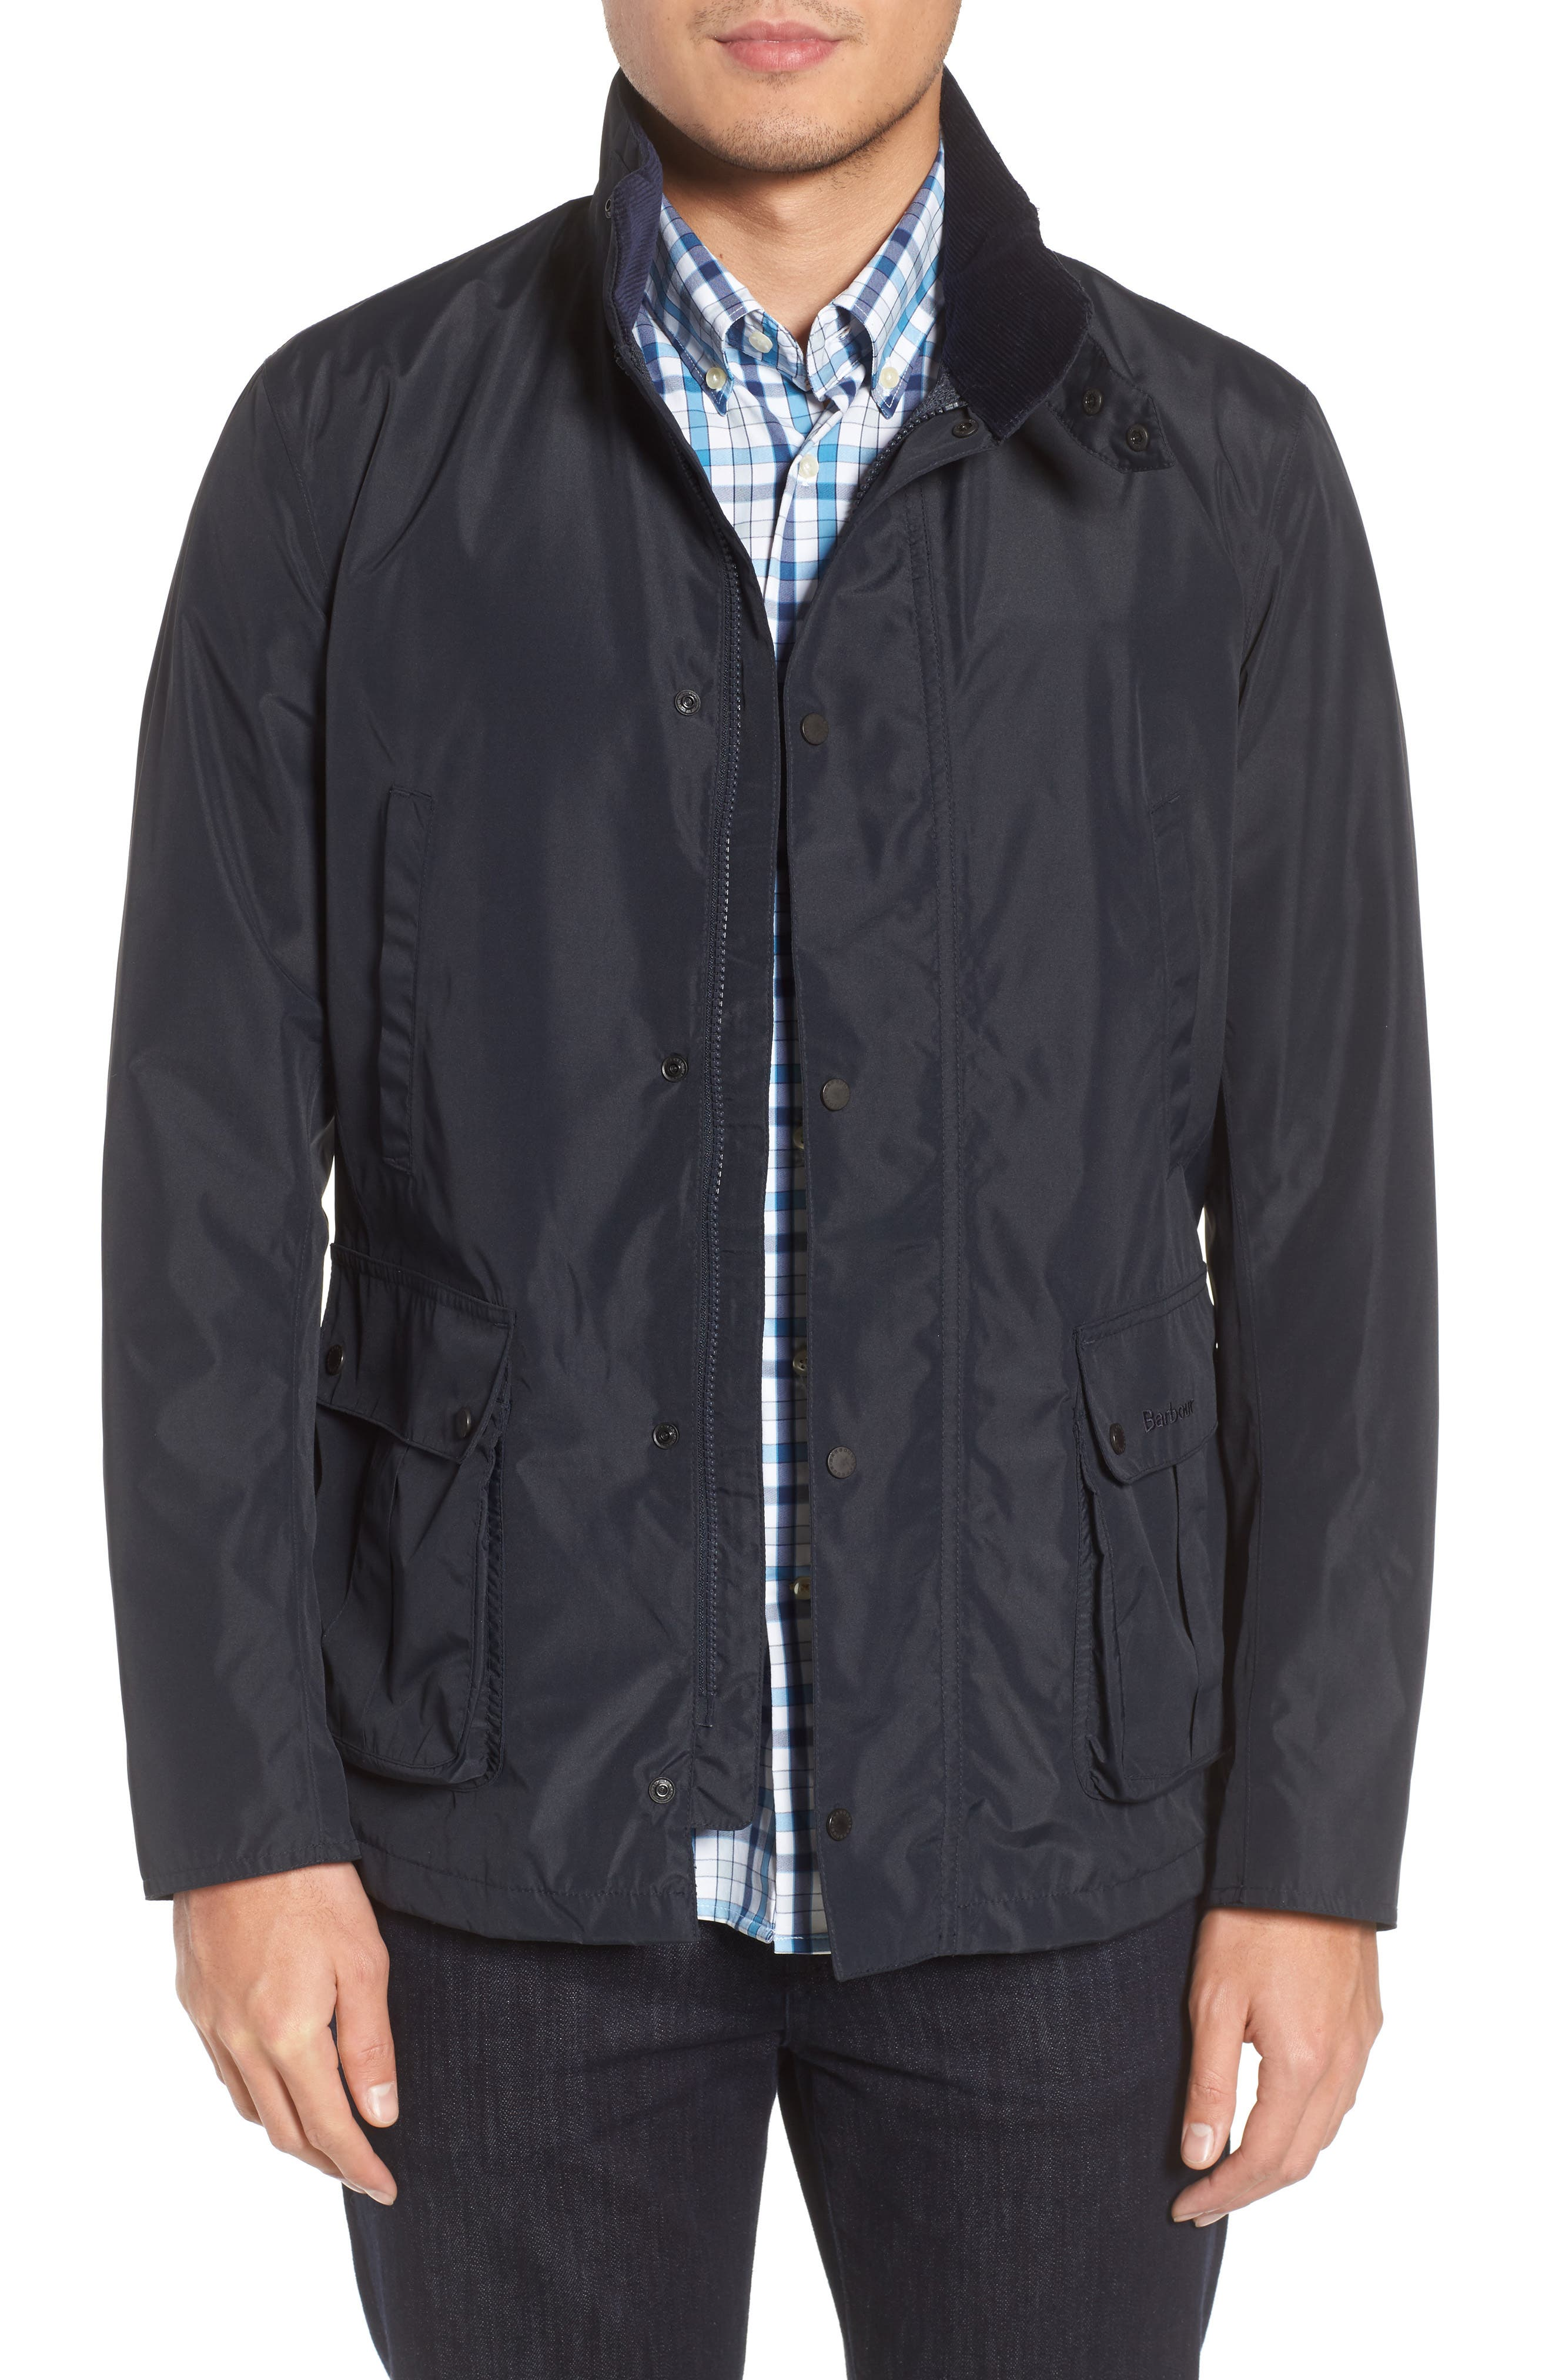 Barbour Severn Jacket